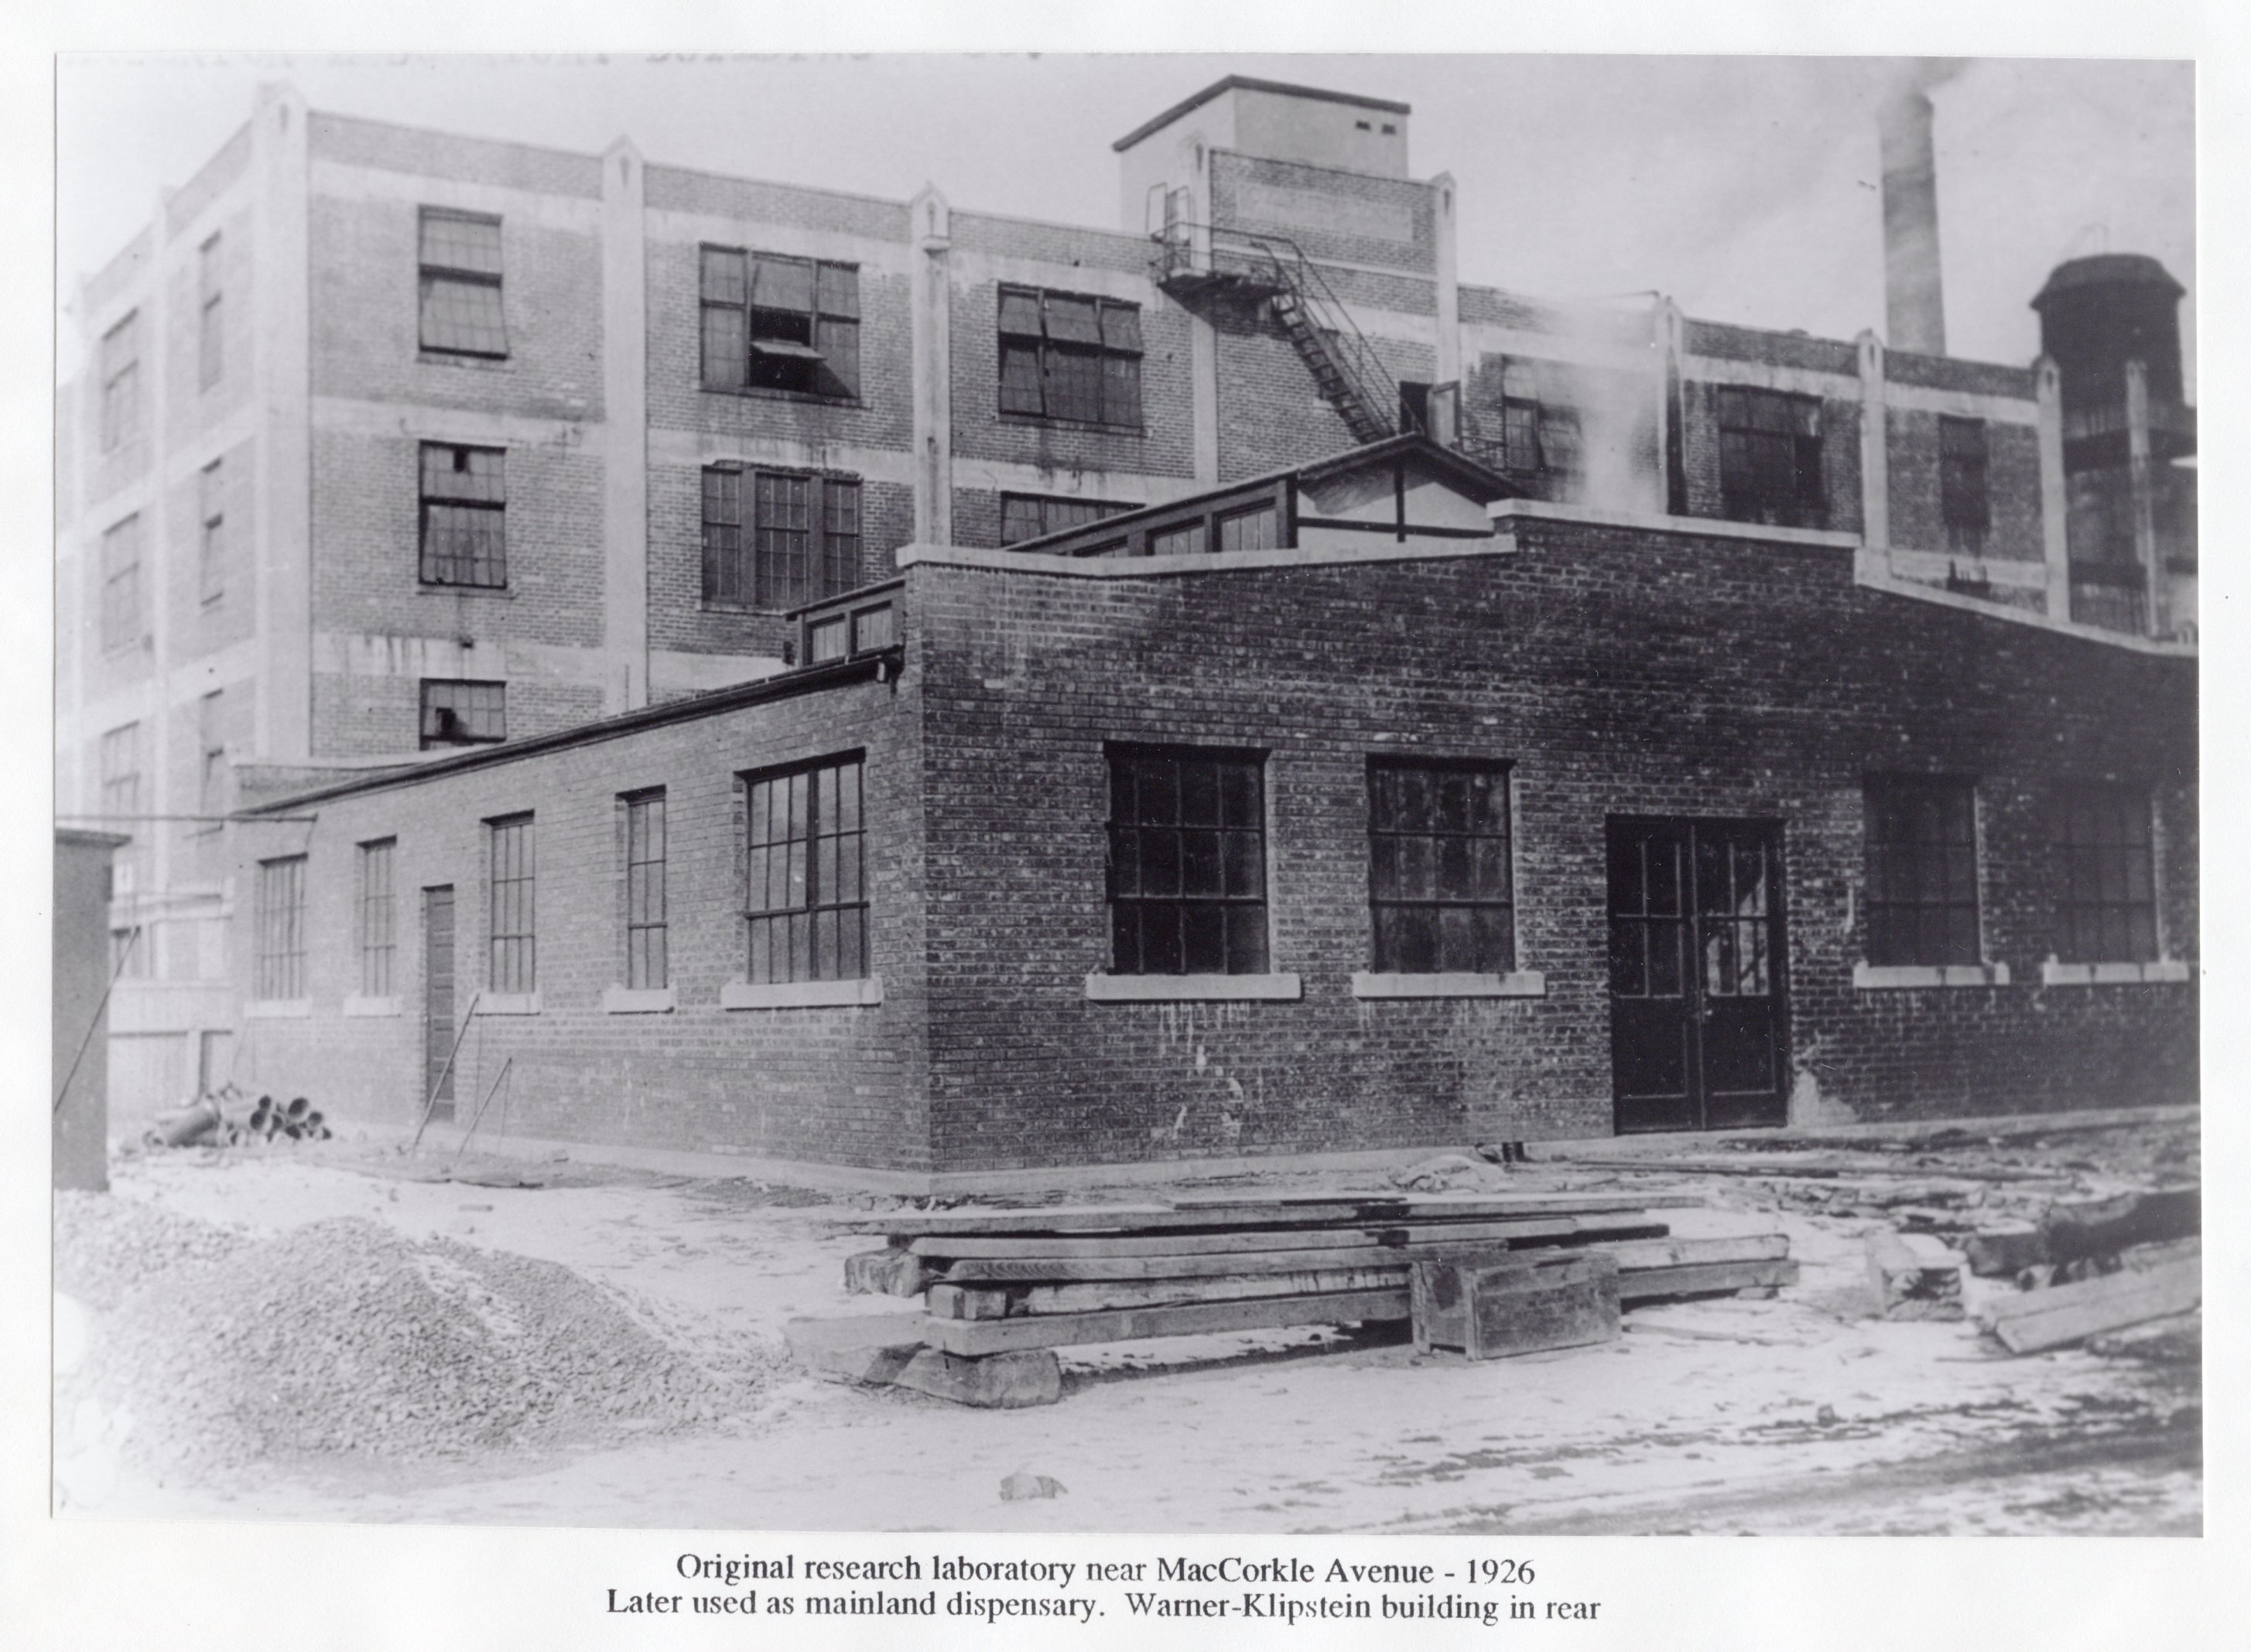 The original research laboratory circa 1926--only a year after Carbide leased the South Charleston site. The Warner-Klipstein building behind it belonged to a chemical manufacturing firm already established in the city (R. Hieronymus).